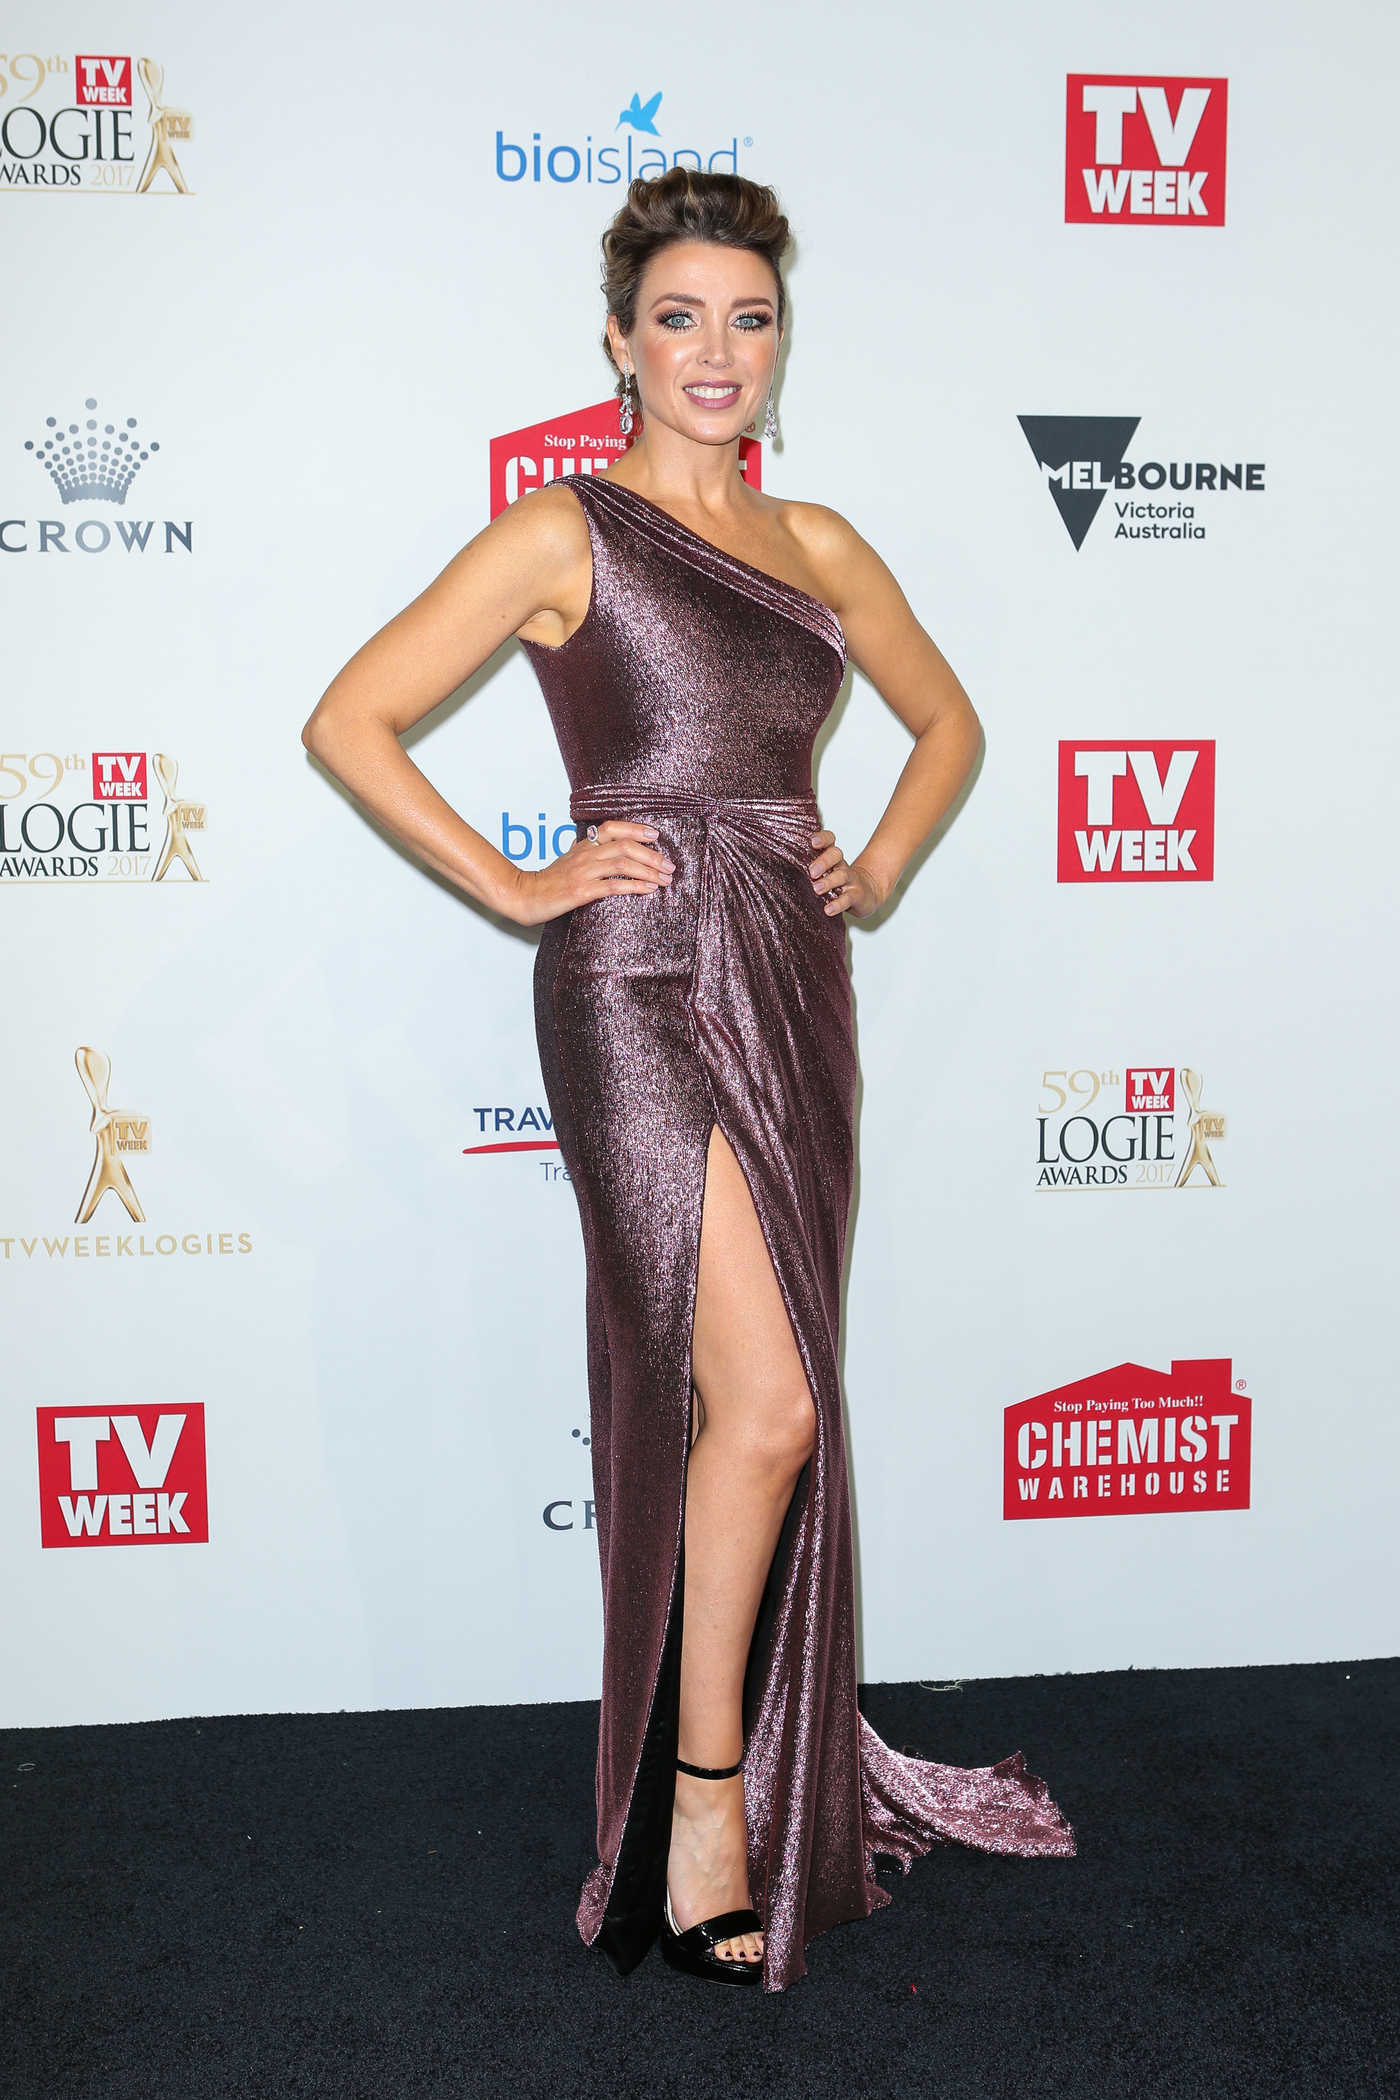 Dannii Minogue at the 59th Annual TV Week Logie Awards in Melbourne 04/23/2017